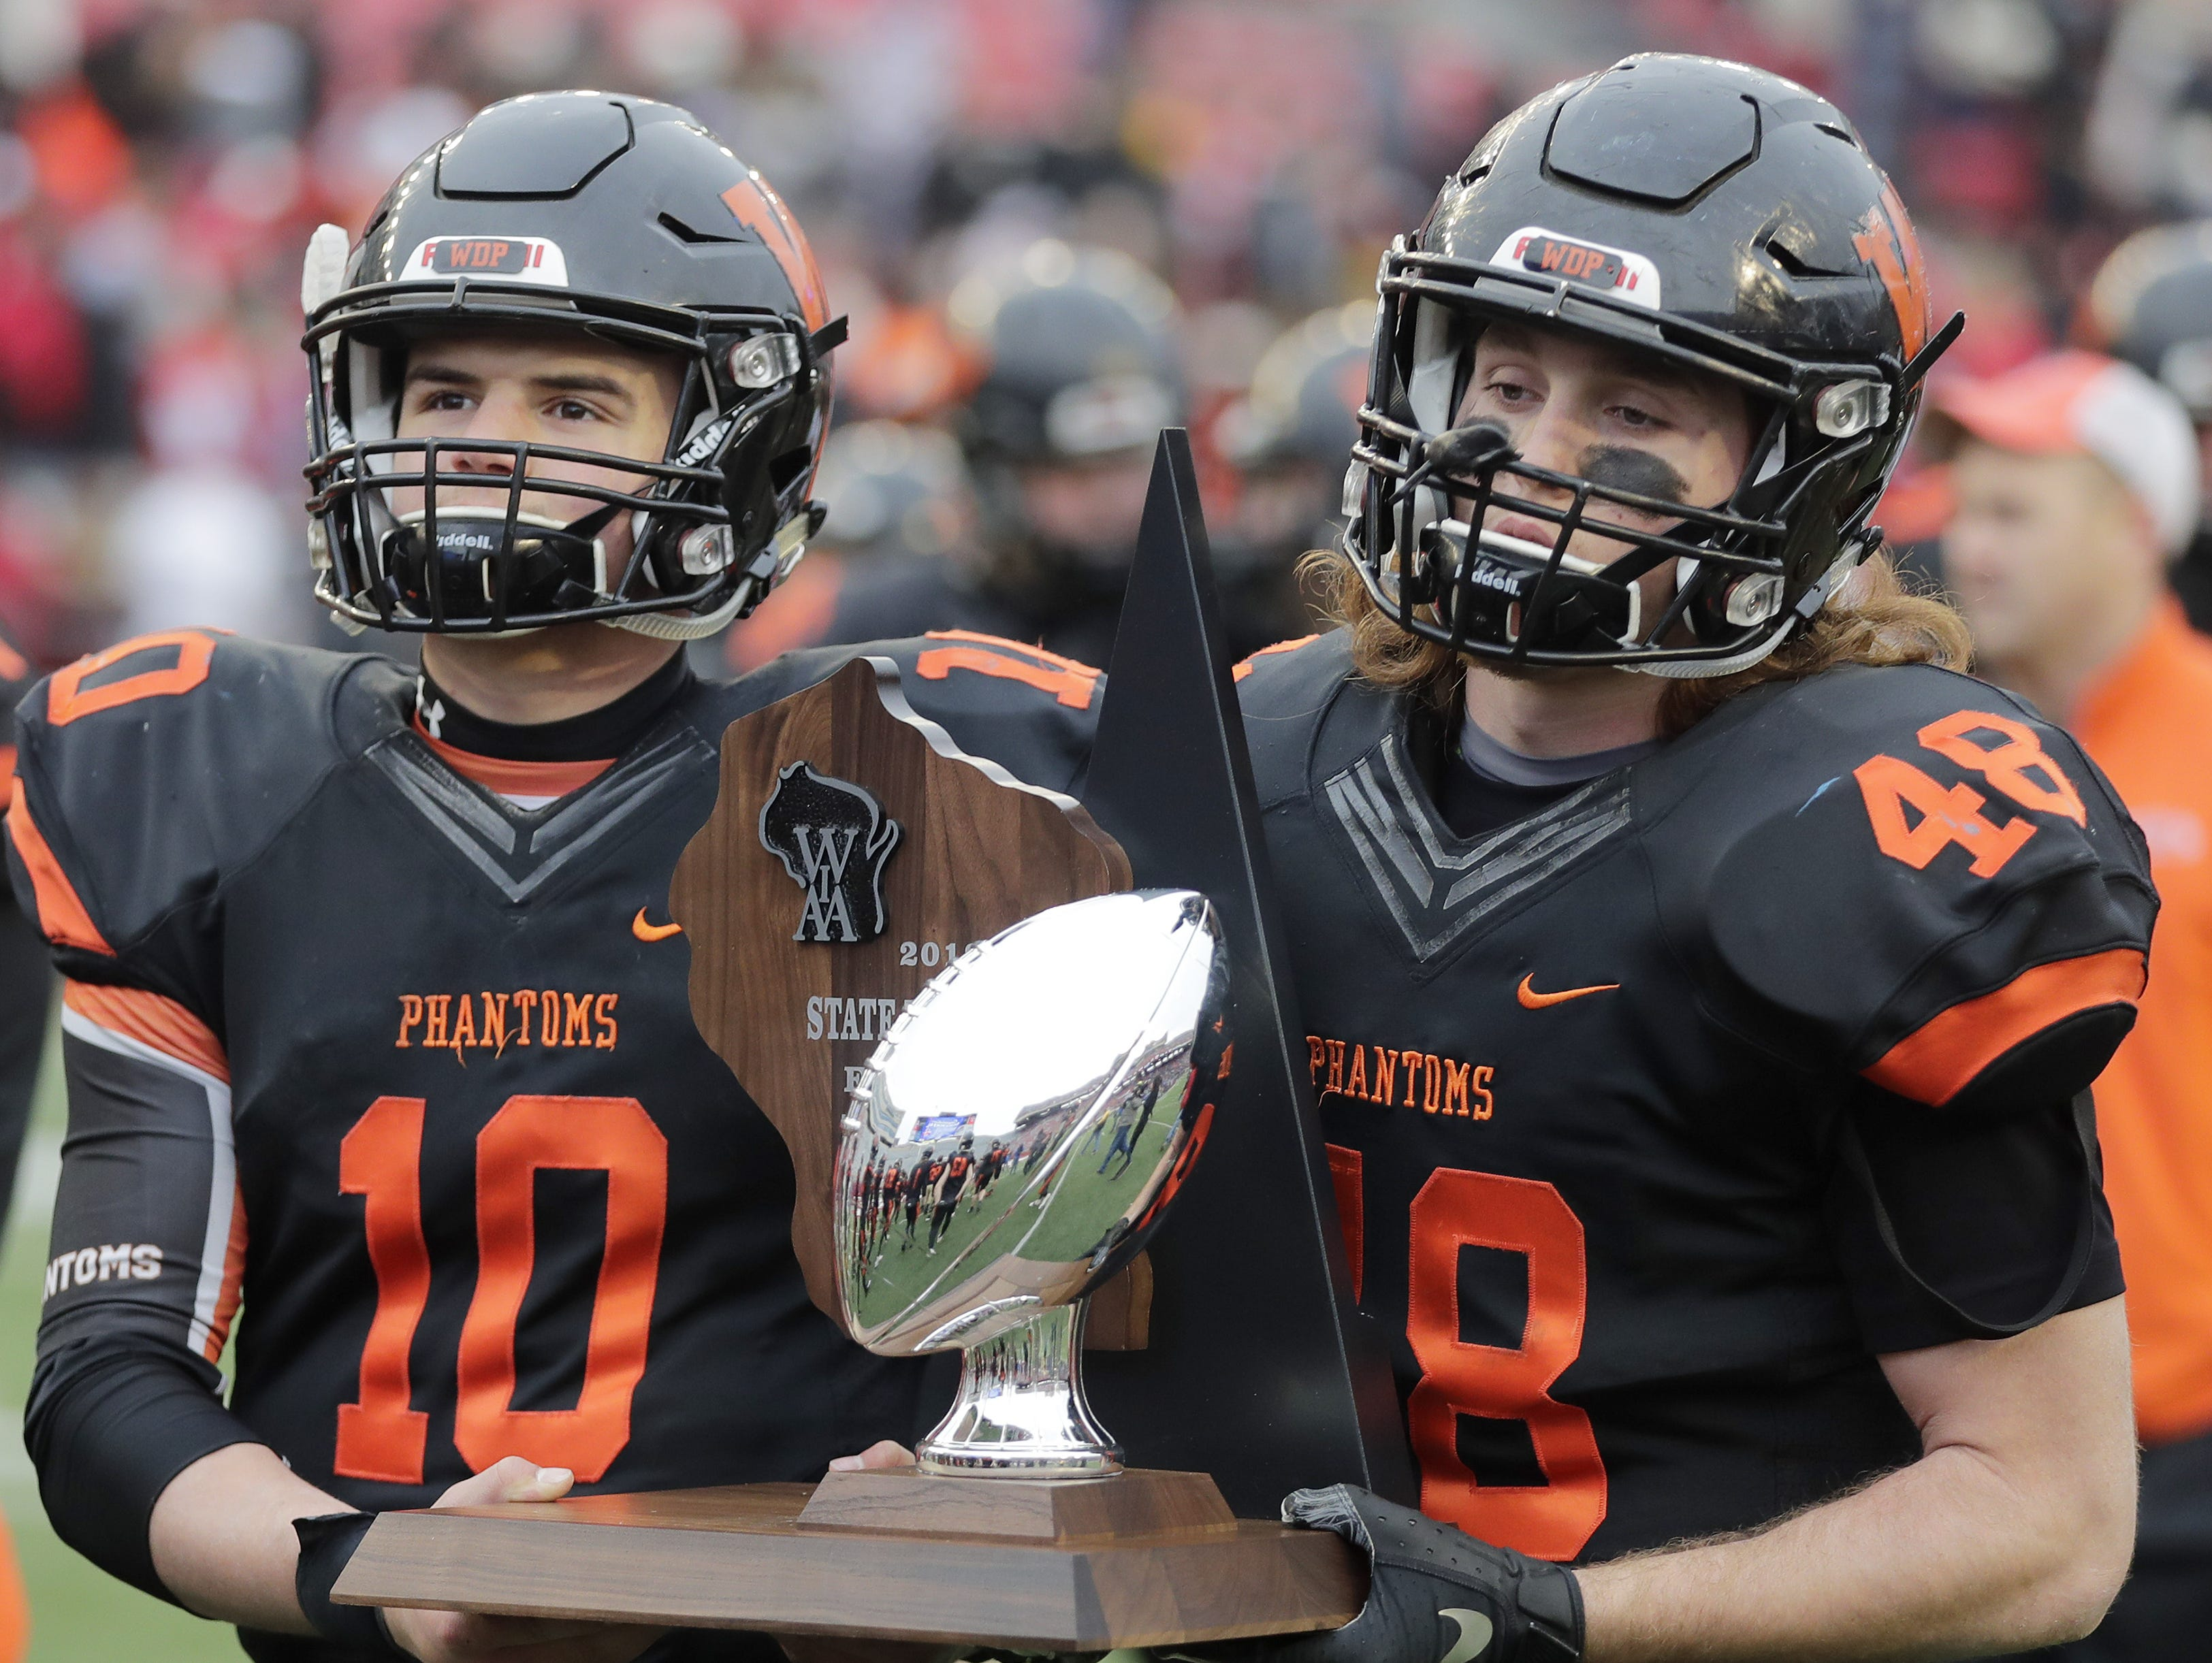 West De Pere's Josh Blount (10) and Matt Kempen (48) carry the runners up trophy after the Phantoms lost to Catholic Memorial in the WIAA Division 3 championship game at Camp Randall Stadium on Friday, November 16, 2018 in Madison, Wis.